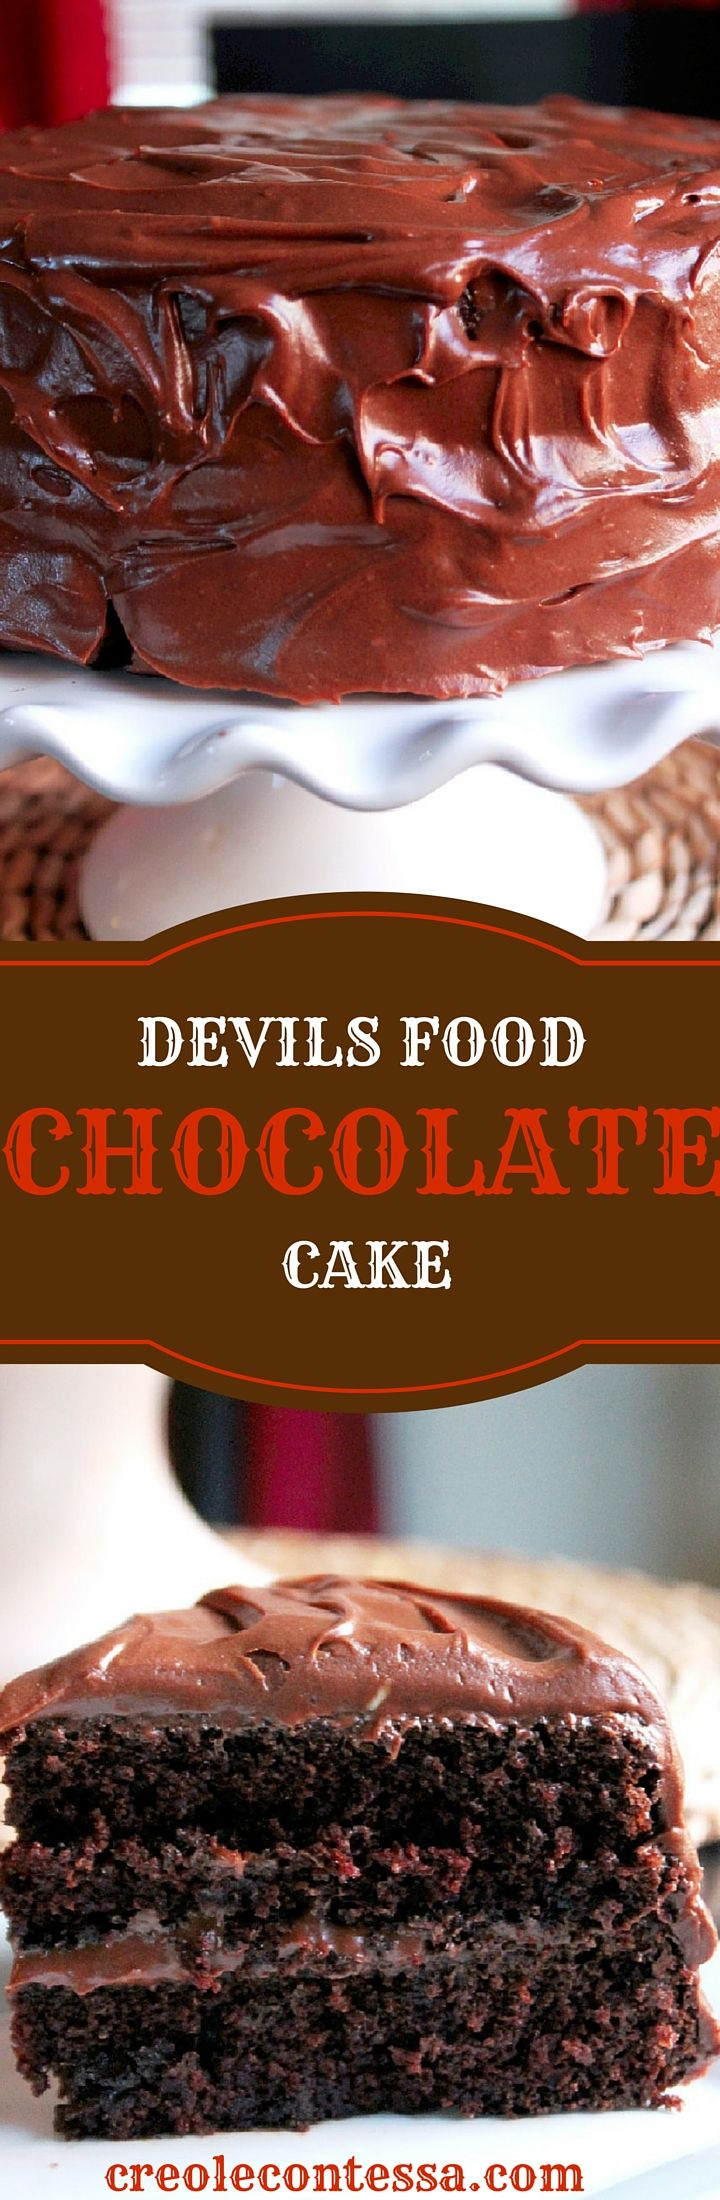 Devil's Food Chocolate Cake with Chocolate Buttercream Cream Cheese Frosting - Creole Contessa